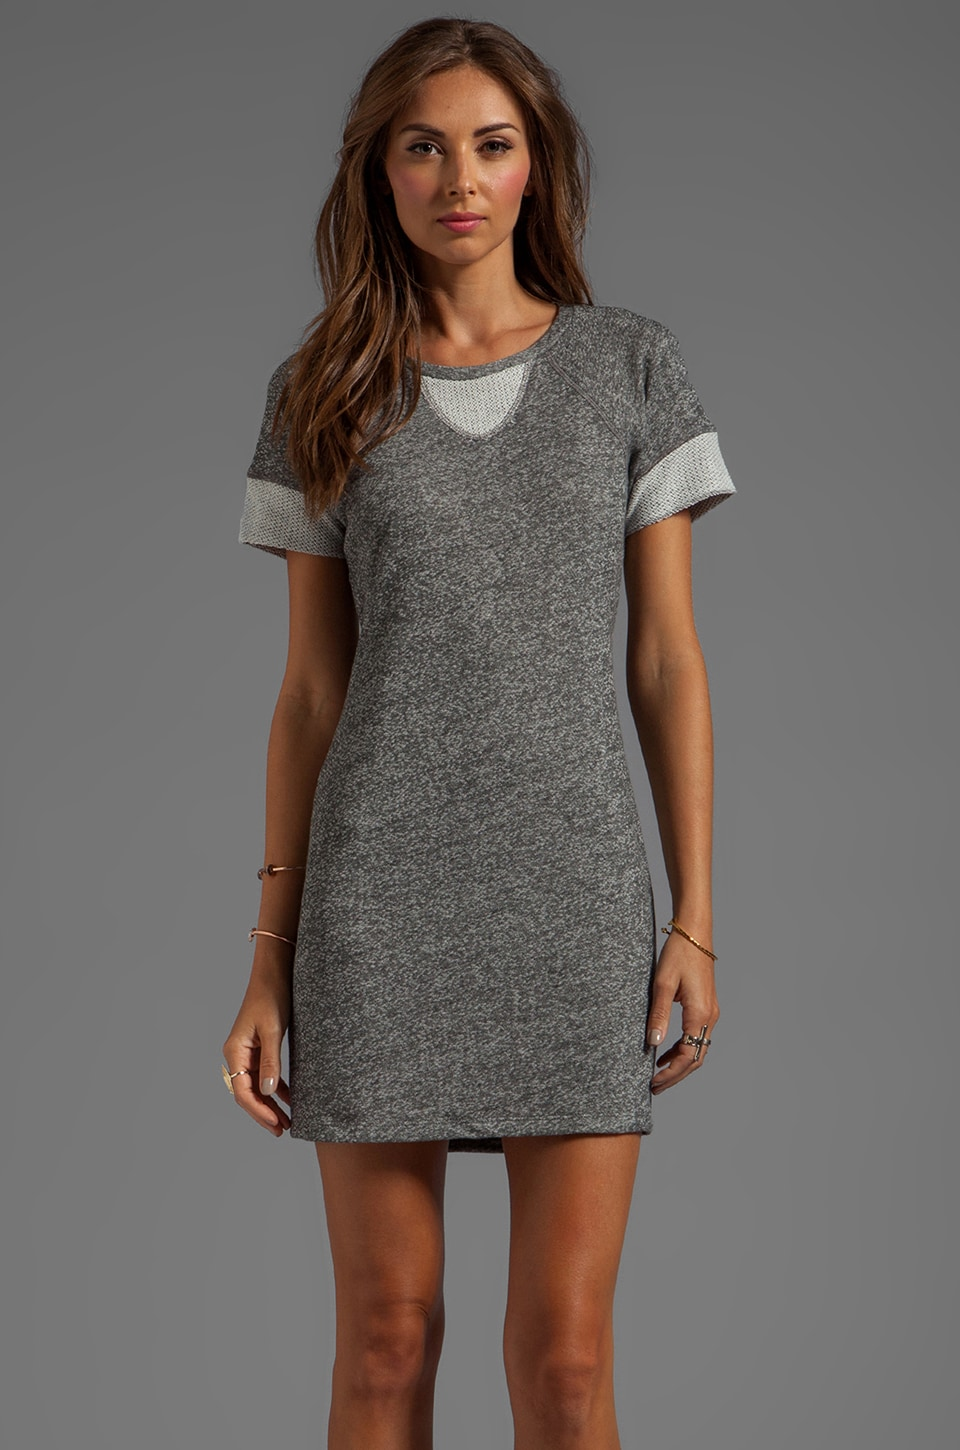 Whetherly Annie French Terry Dress in Charcoal